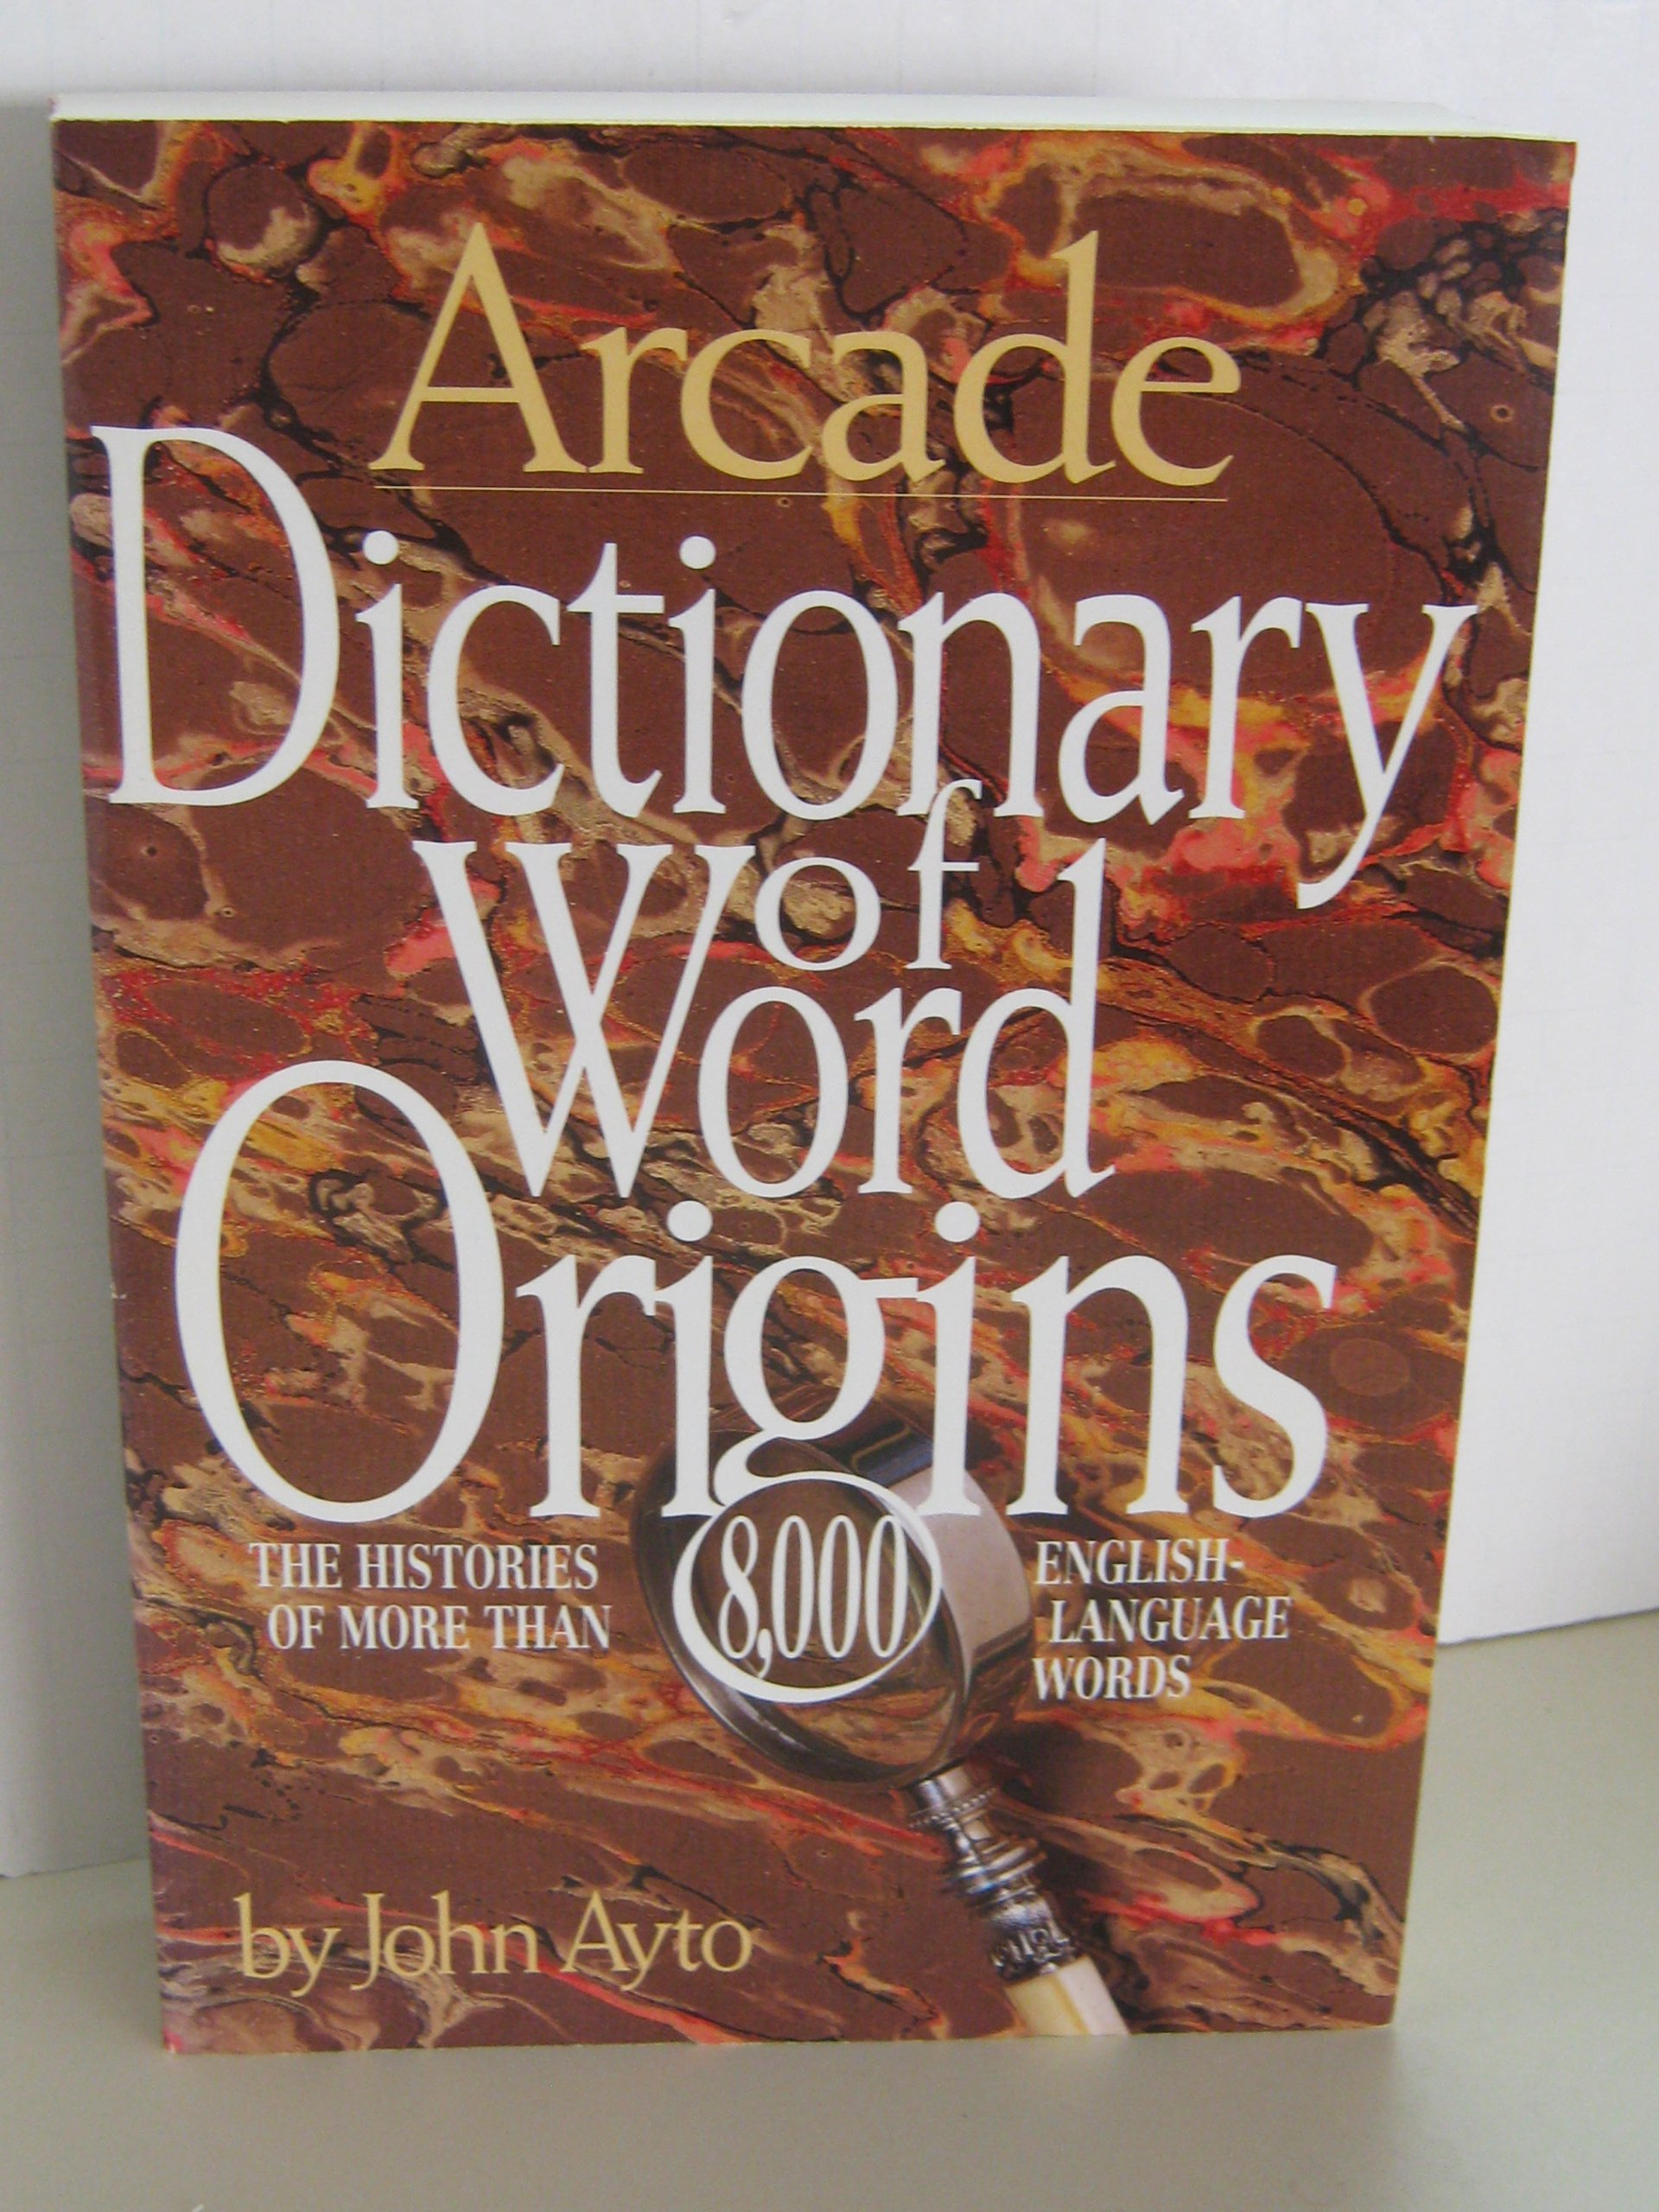 Dictionary of Word Origins The Histories of More Than 8,000 English-Language Words